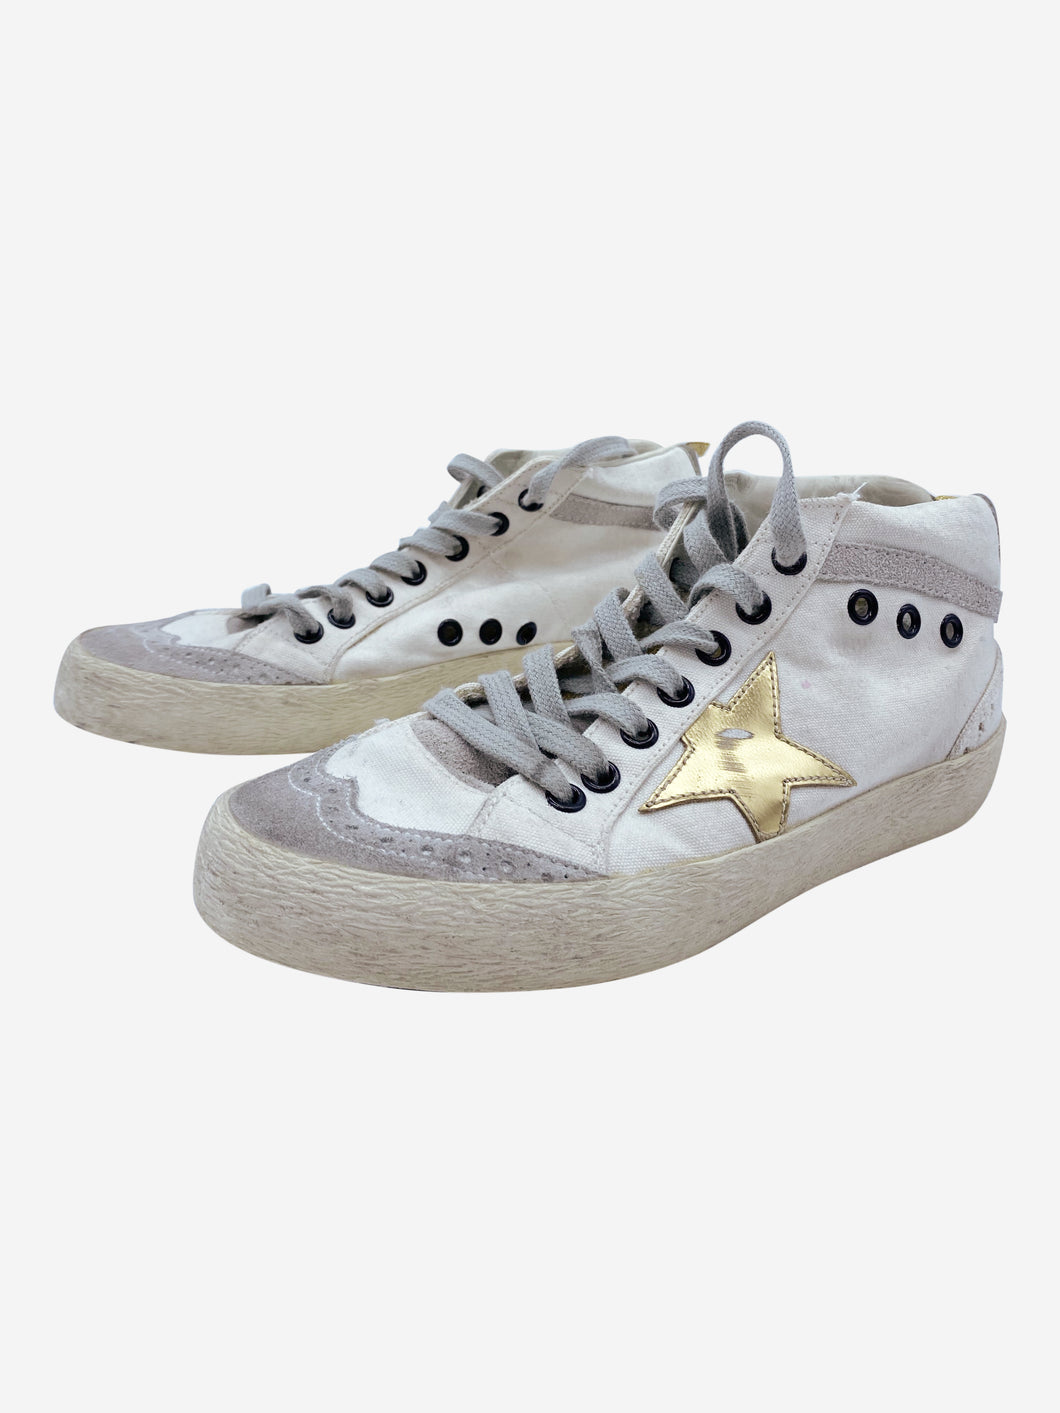 White midrise trainers with gold star accents- size EU 36 (UK 3)